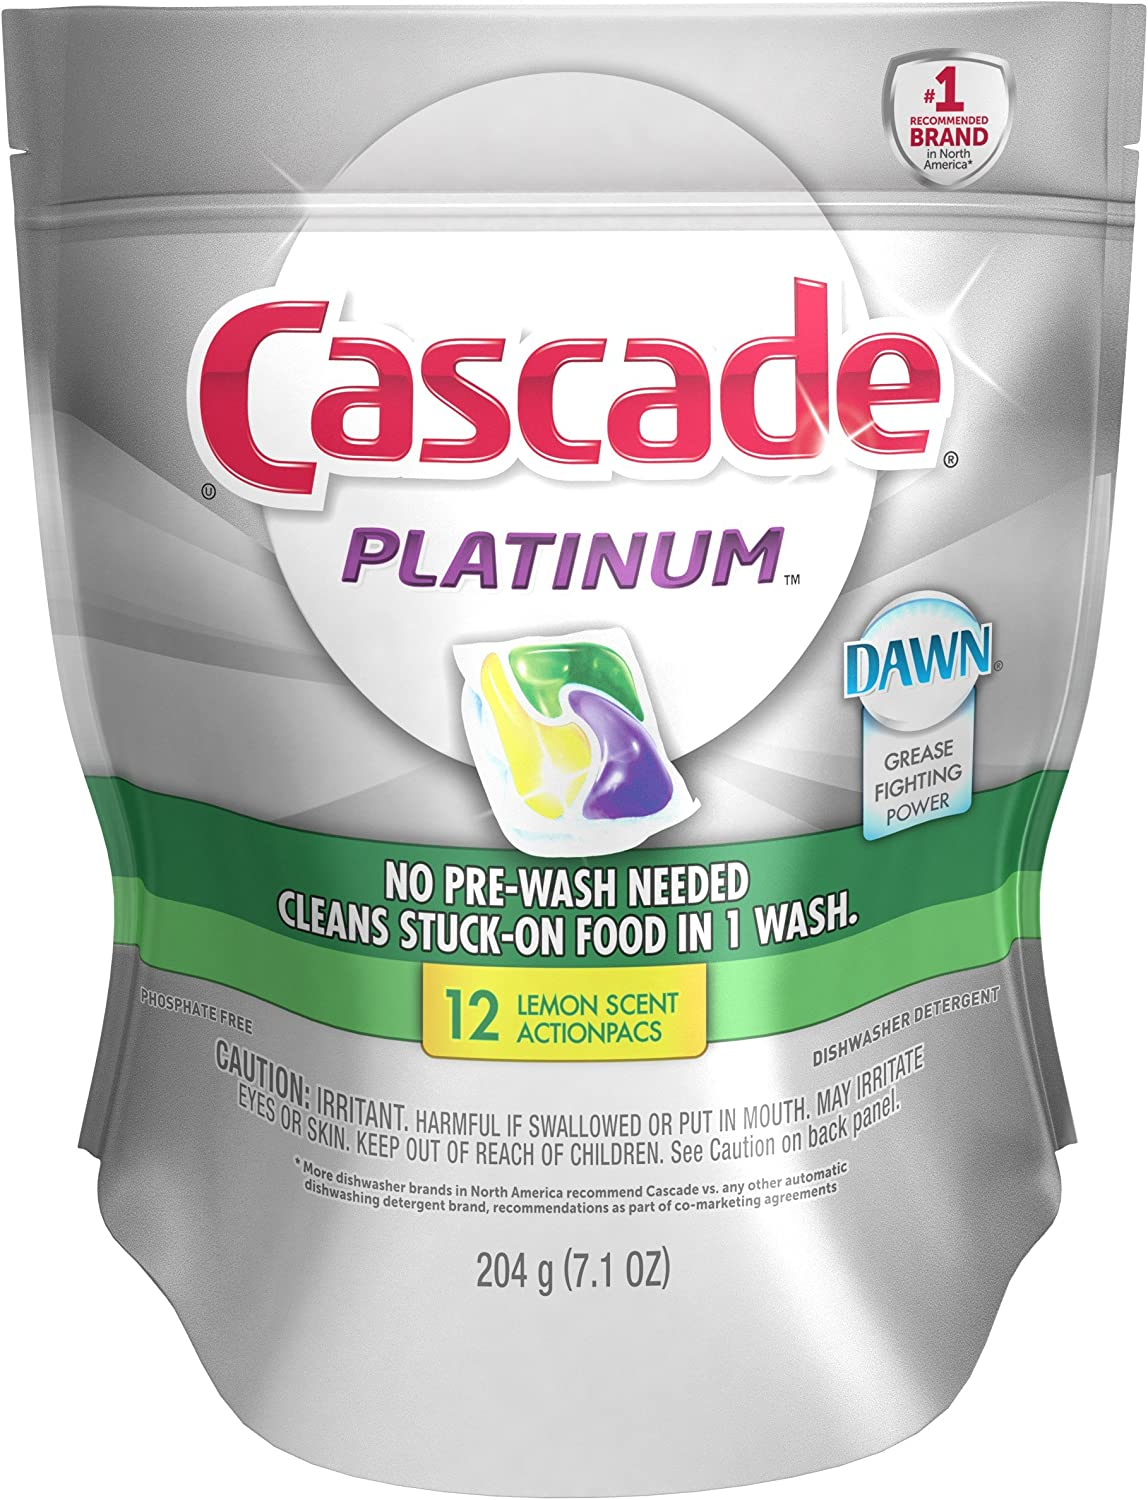 Cascade Platinum Actionpacs Lemon Burst Scent Dishwasher Detergent, 12 Count, 7.1 oz